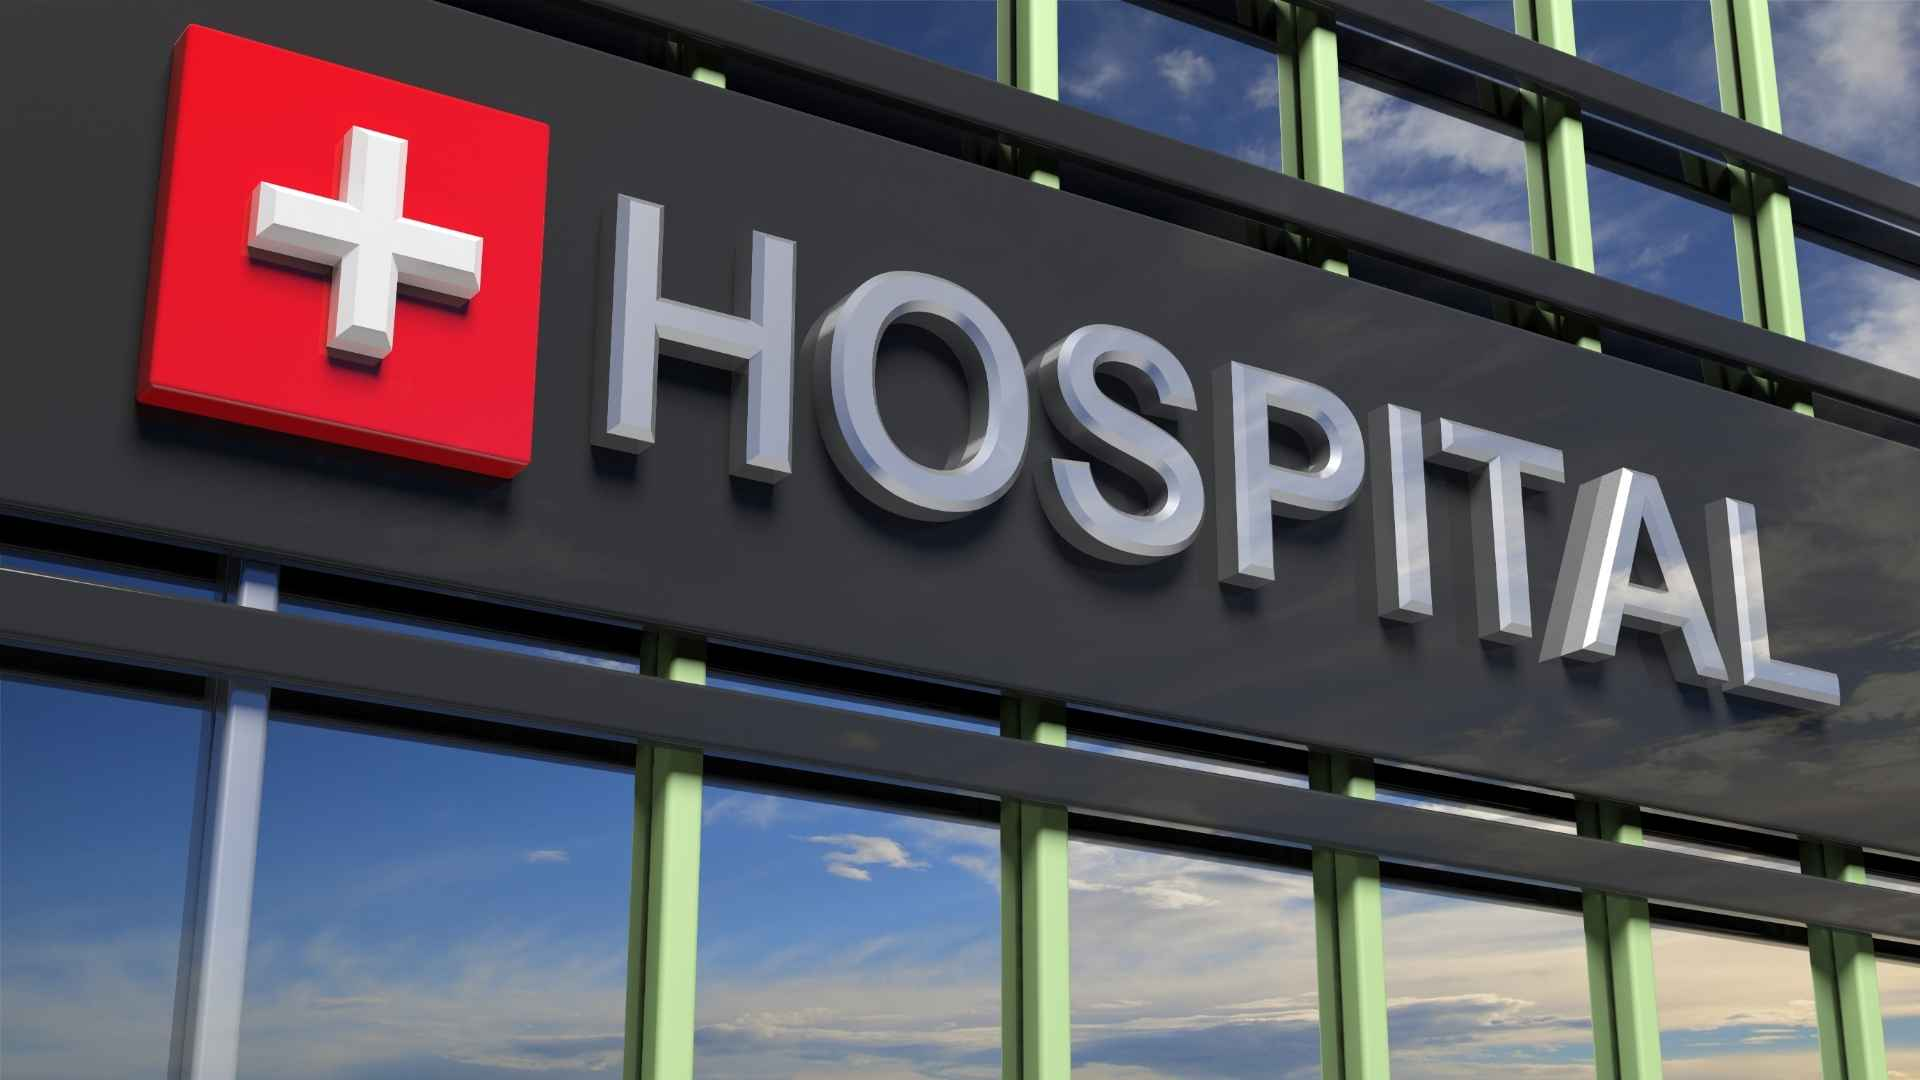 Hospital Care Supply and Demand in the United States